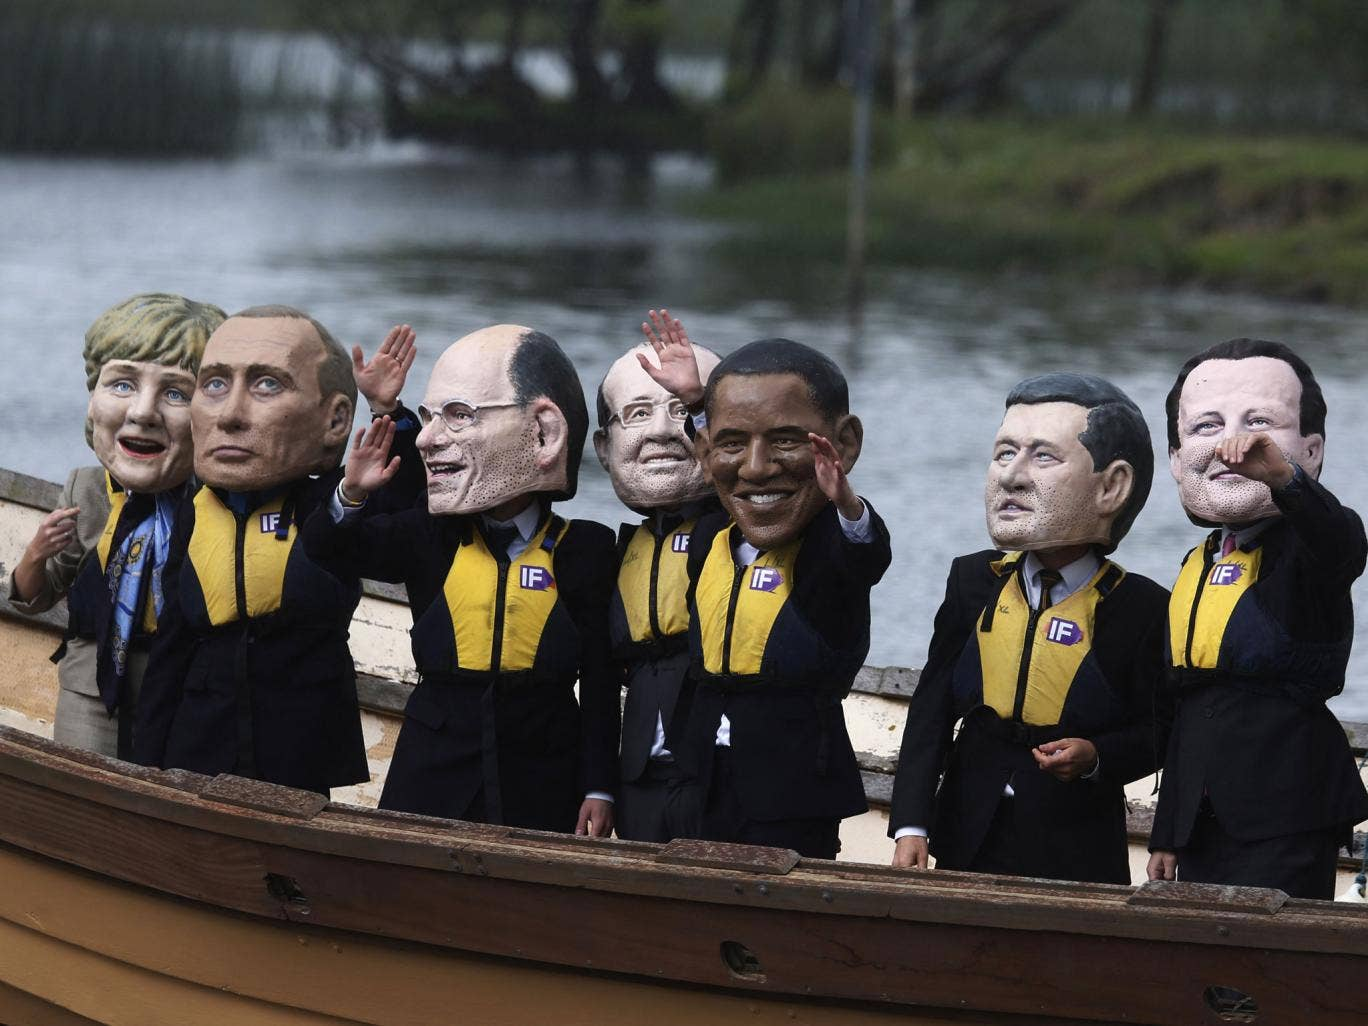 Anti-hunger activists wear giant head masks depicting the G8 leaders